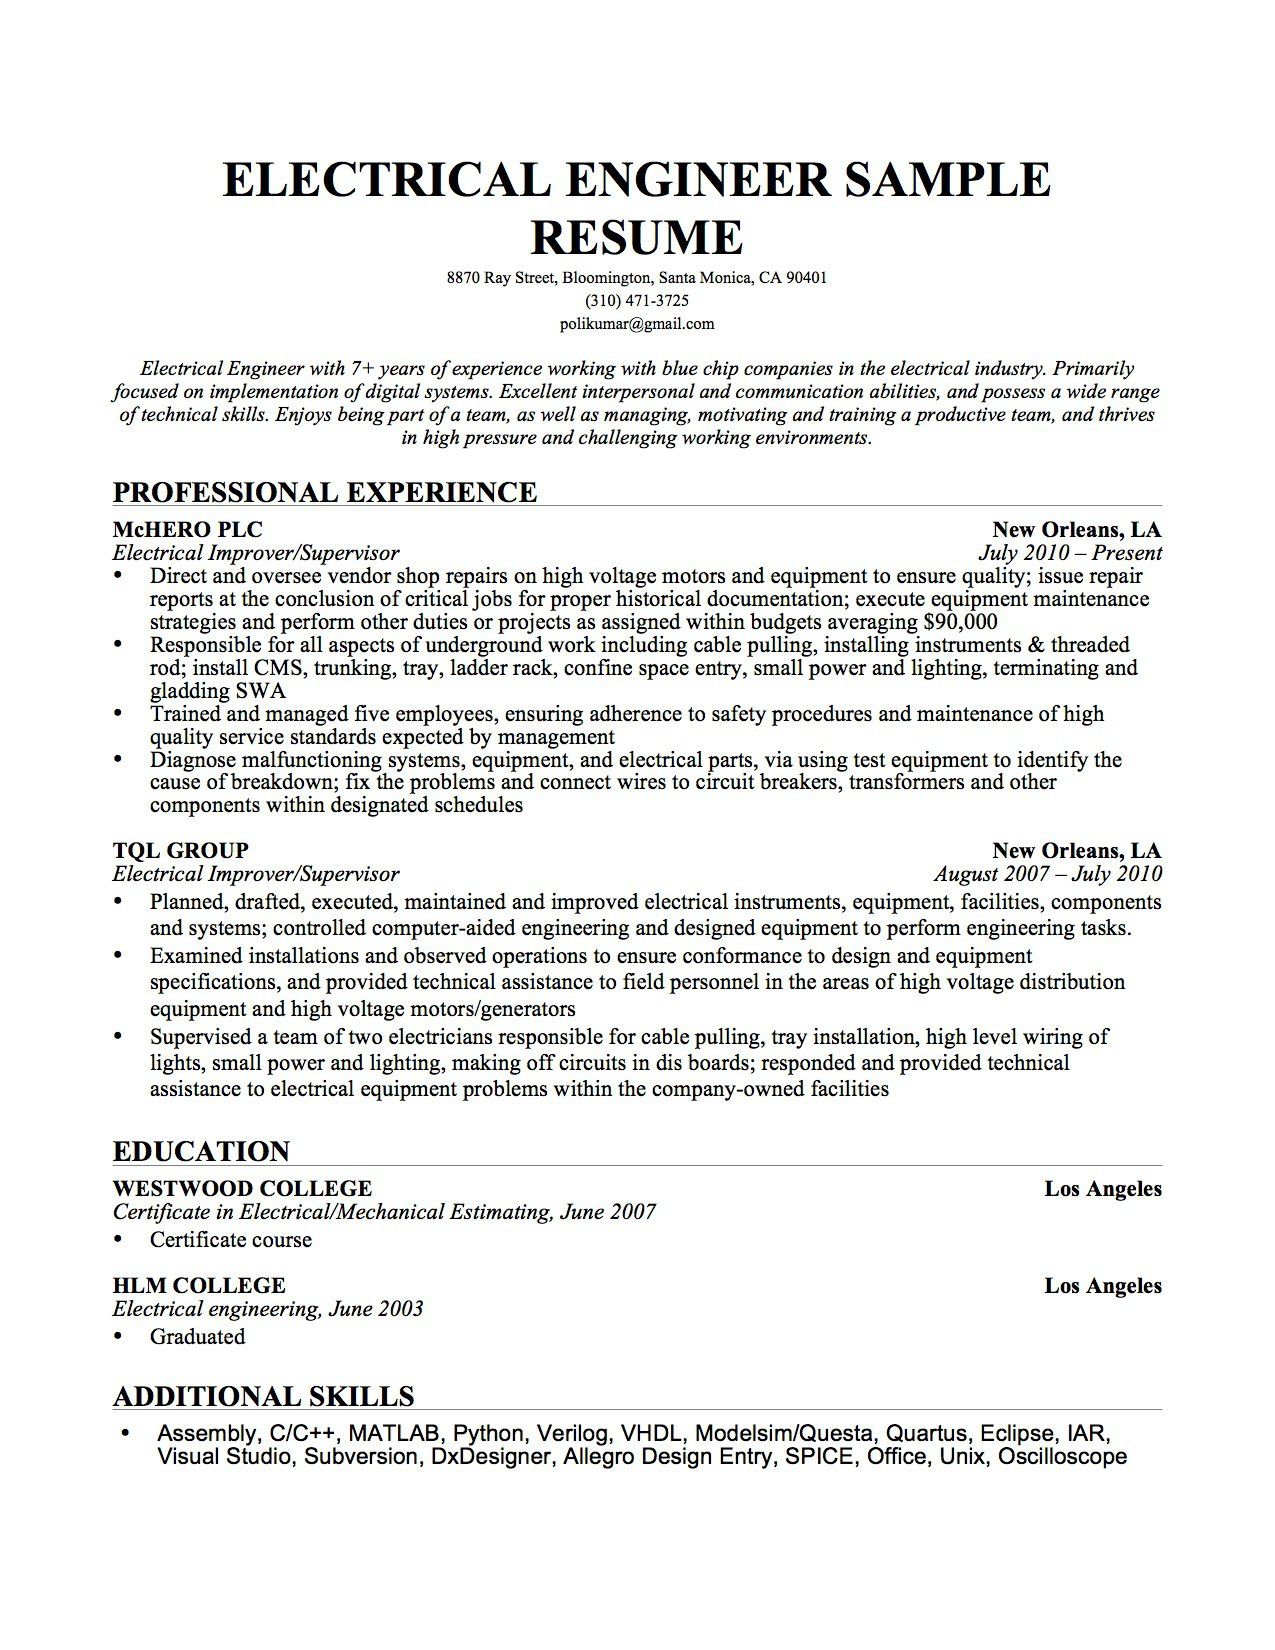 Engineer Sample Resume Equipment Fixed Biomedical Technician Cover